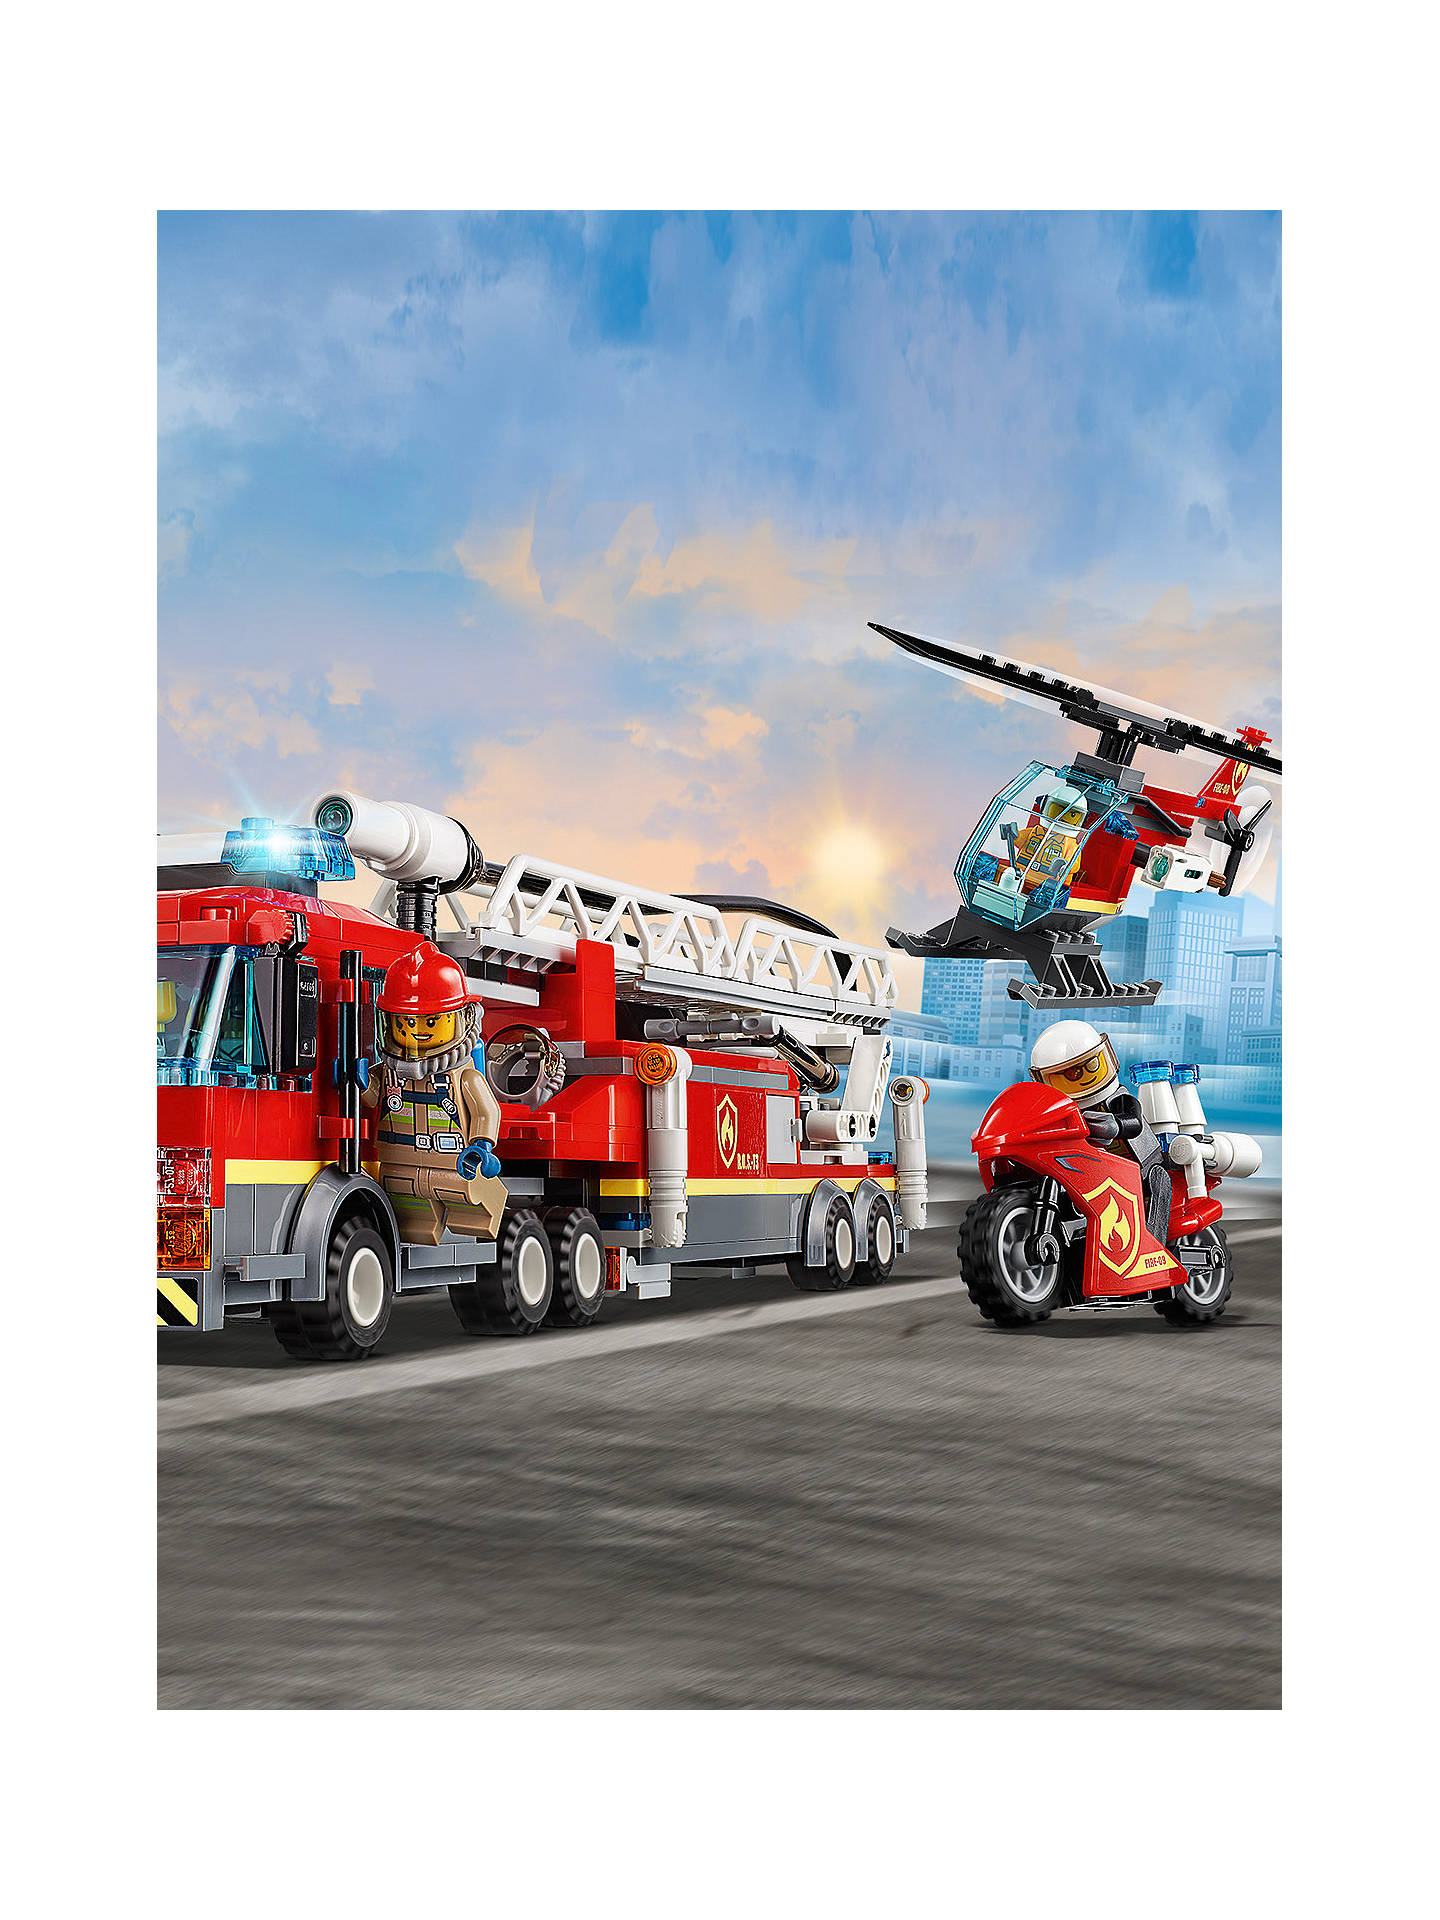 LEGO City 60216 Downtown Fire Brigade at John Lewis & Partners